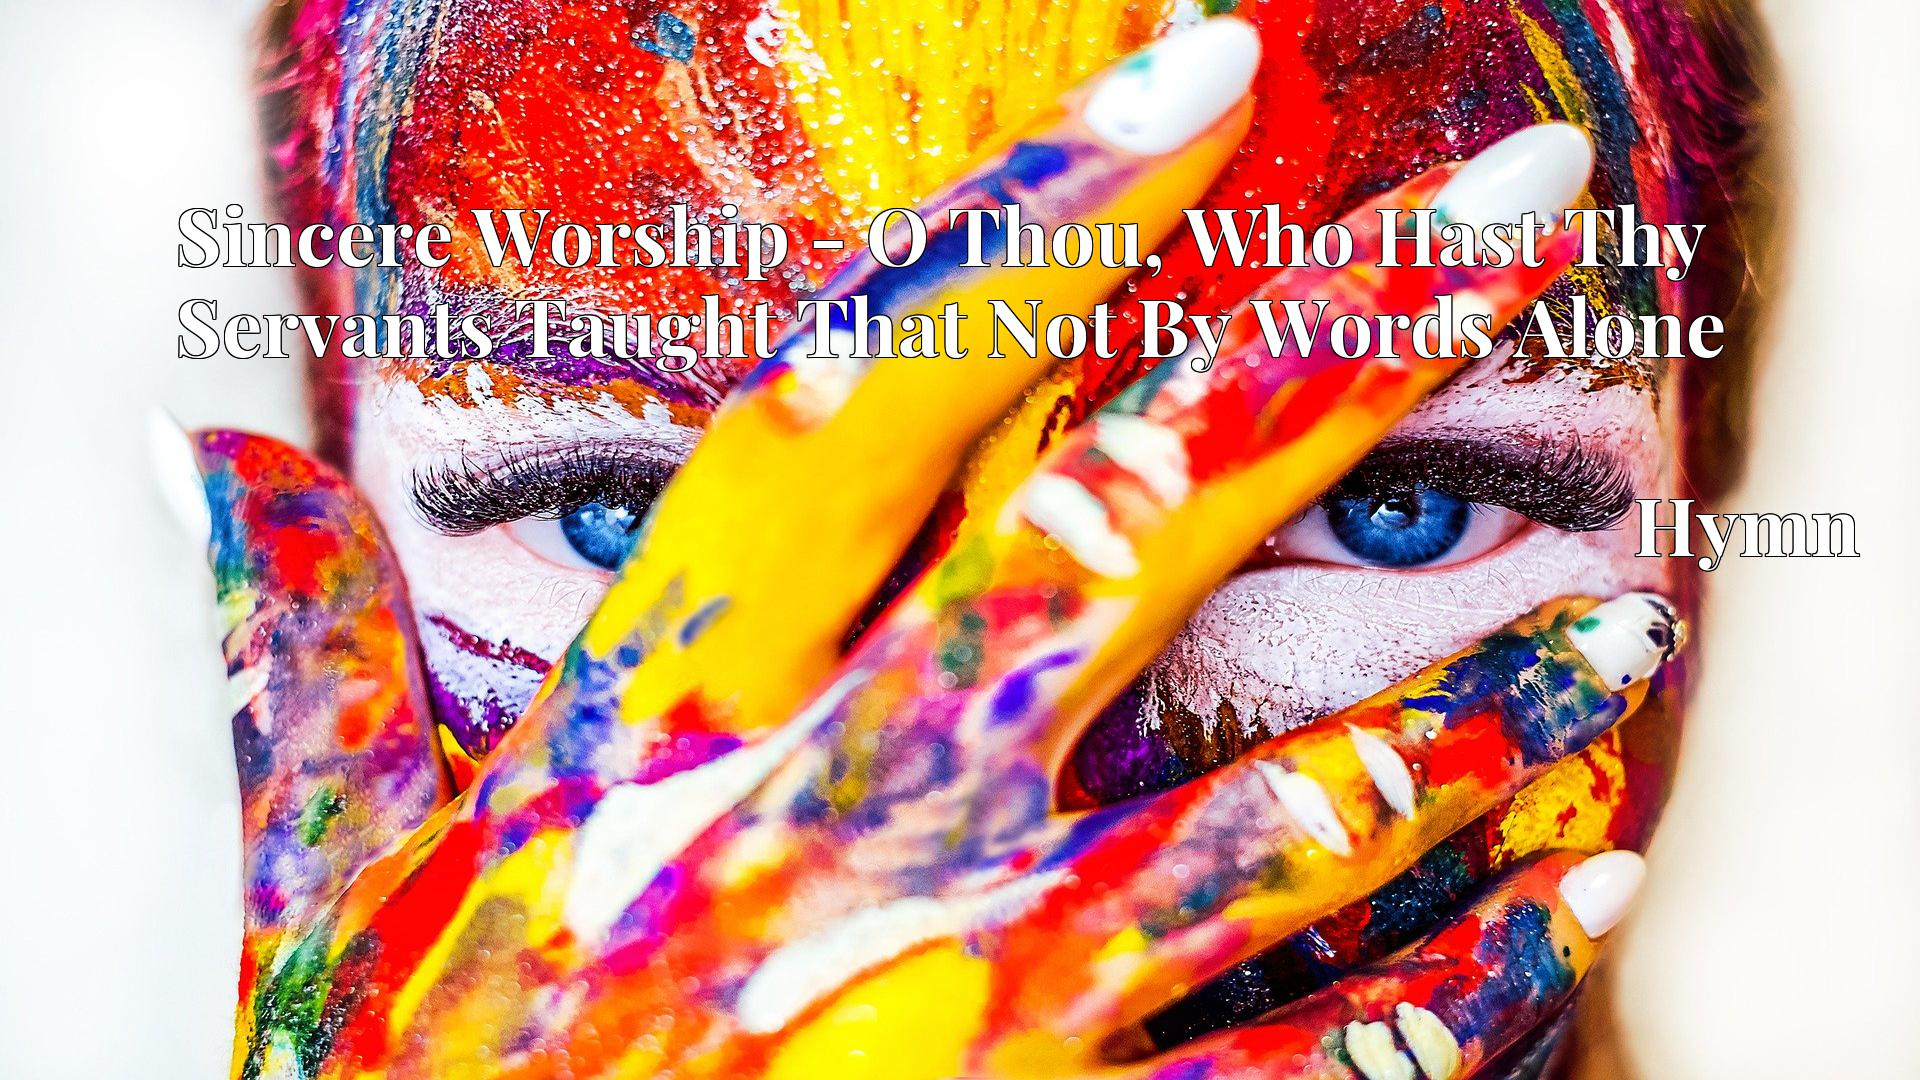 Sincere Worship - O Thou, Who Hast Thy Servants Taught That Not By Words Alone - Hymn